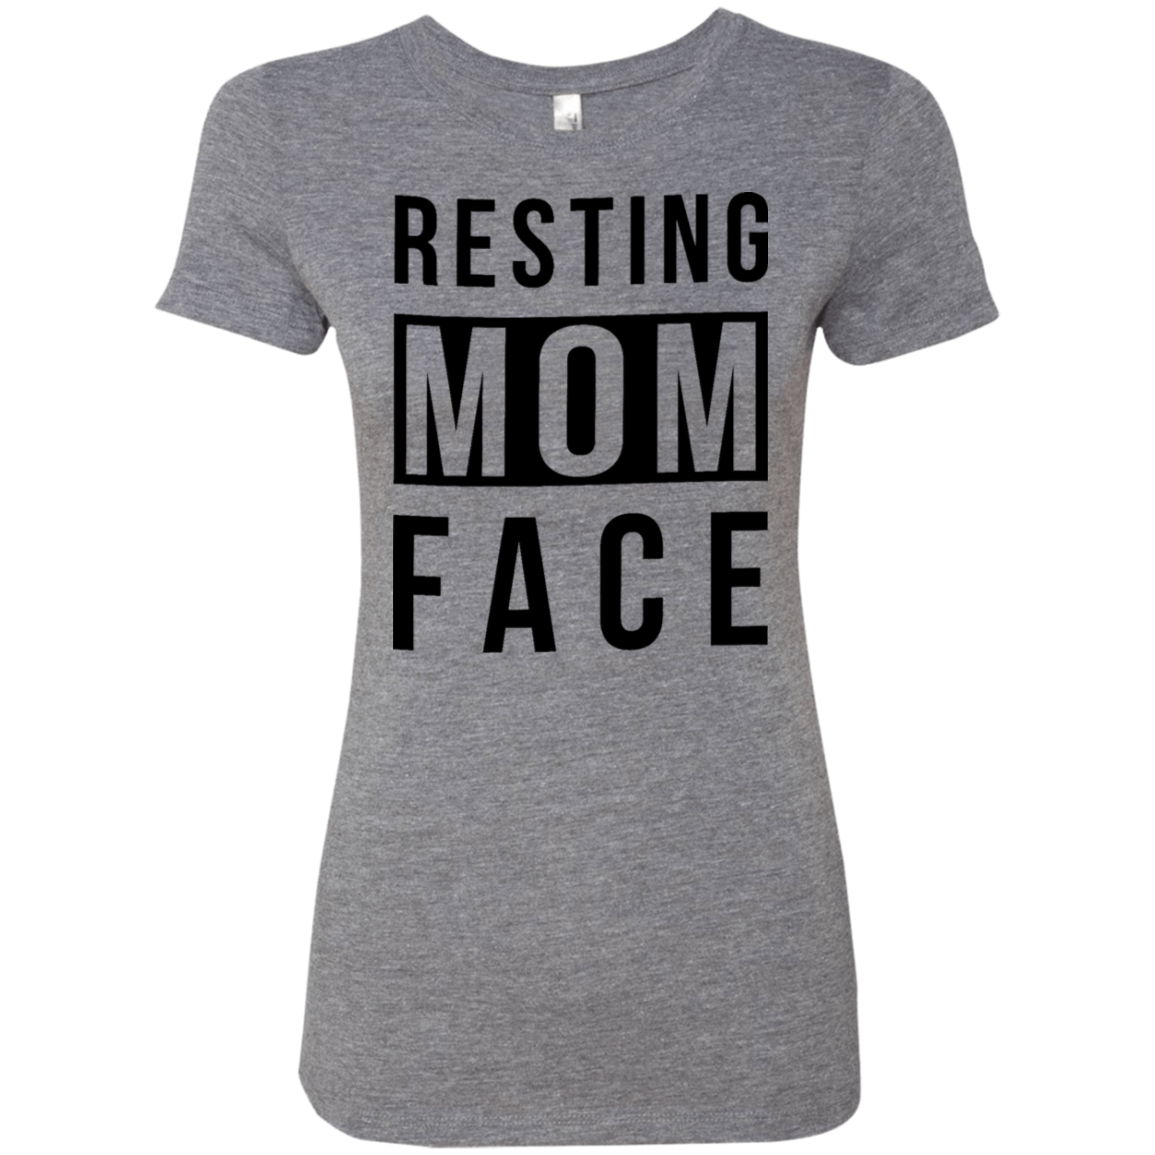 Resisting Mom Face Women's Classic Tee